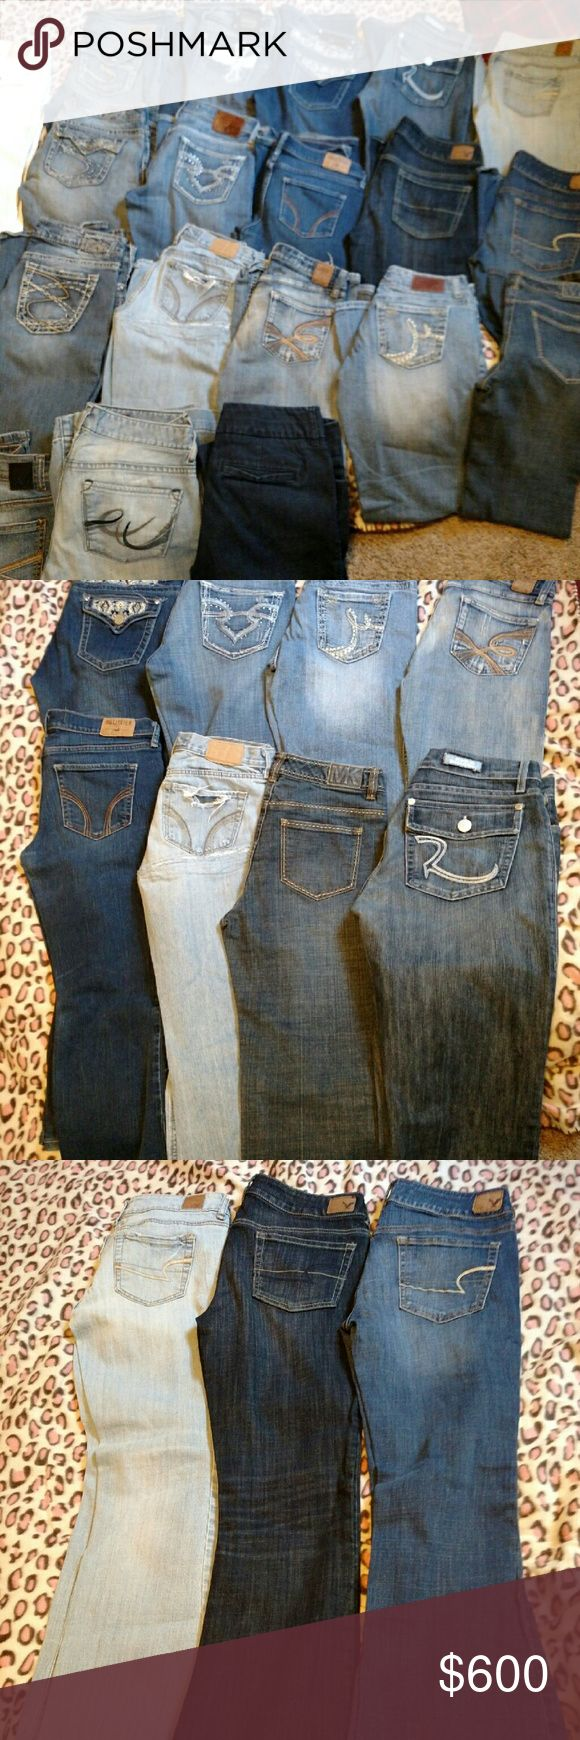 *HUGE 19 pair WOMEN JEAN LOT* (**3 Silver's & Big Star jeans , BKE, Vanity, Capris SOLD! **) HUGE lot of women jeans, all different name brands & sizes. All in good condition. White LA idol capris- size 7.W 30, L-18. Silver Suki Surplus. Size 29/32. Silver Frances 18' bootcut, size 29/31. Silver Pioneer bootcut, size 27/31. Vanity premium size 28/33. Express Stella fit n flare, size 4 R. Material girl, size 5 short court. AE artist stretch, size 6. The limited denim 678. Size 4. Will…